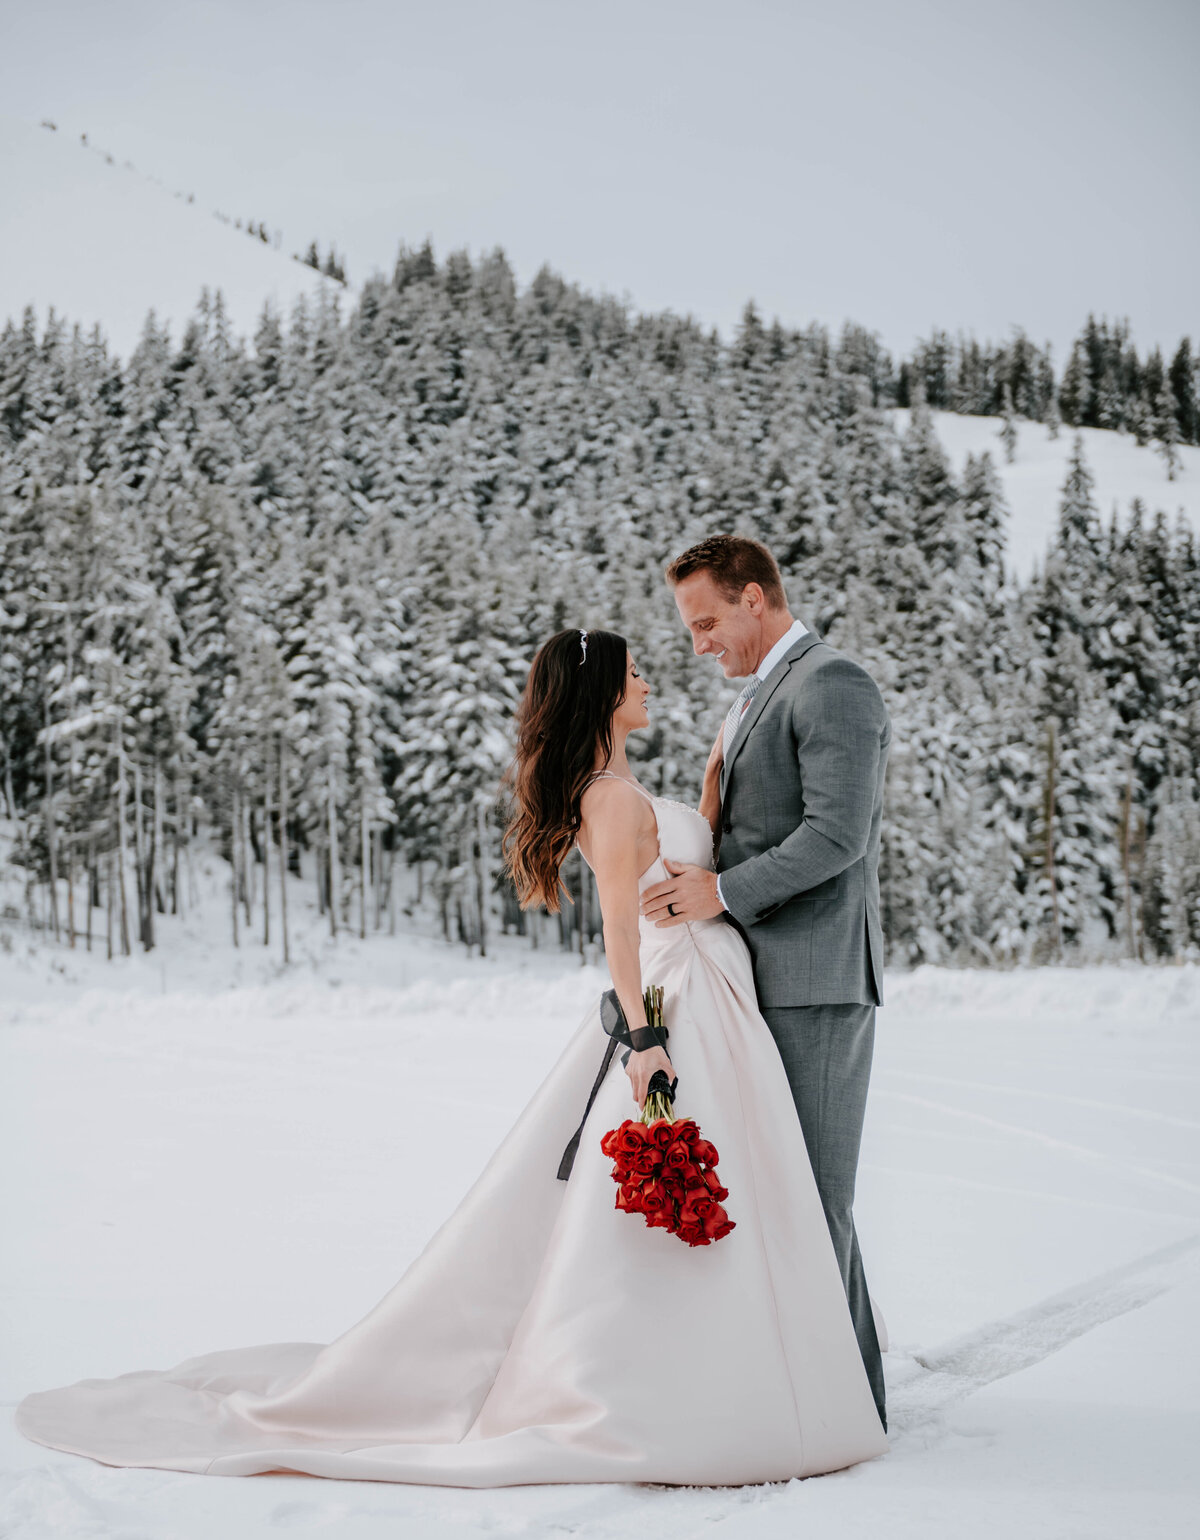 mt-bachelor-snow-winter-elopement-bend-oregon-wedding-photographer-2055